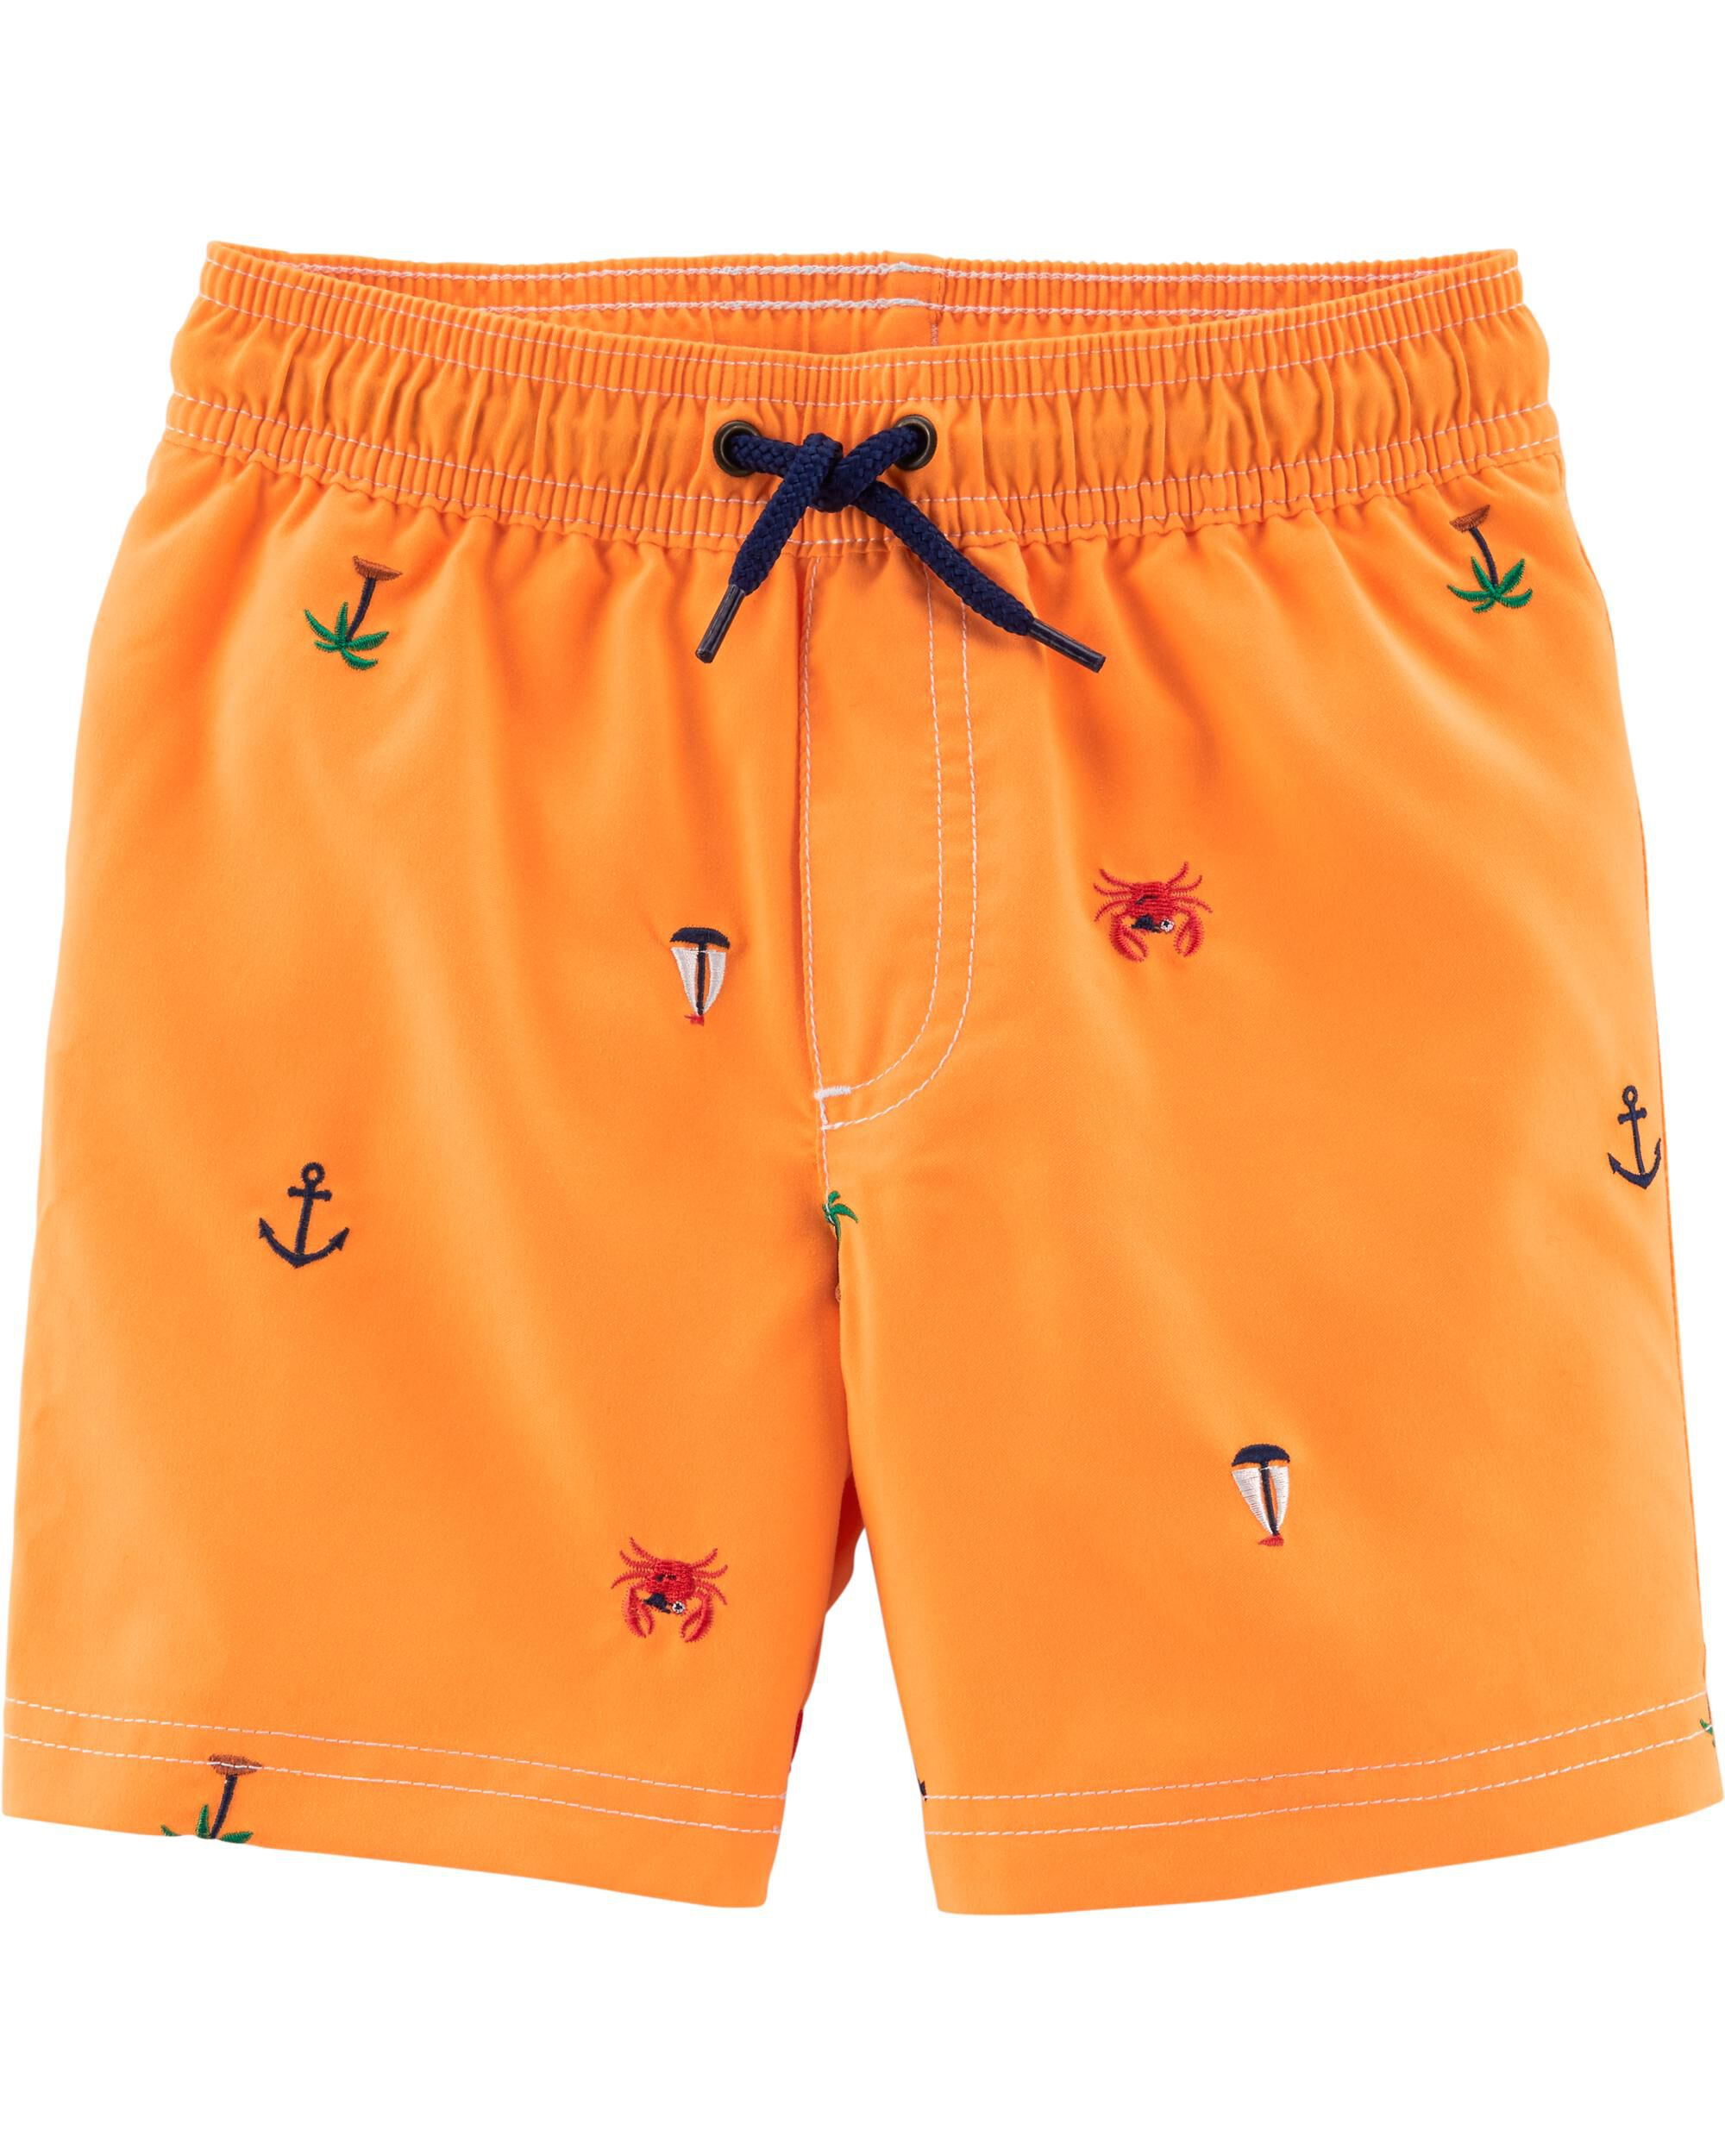 Osh Kosh B/'gosh Toddler Boys/' Palm Tree Swim Short Size 2T 3T $26